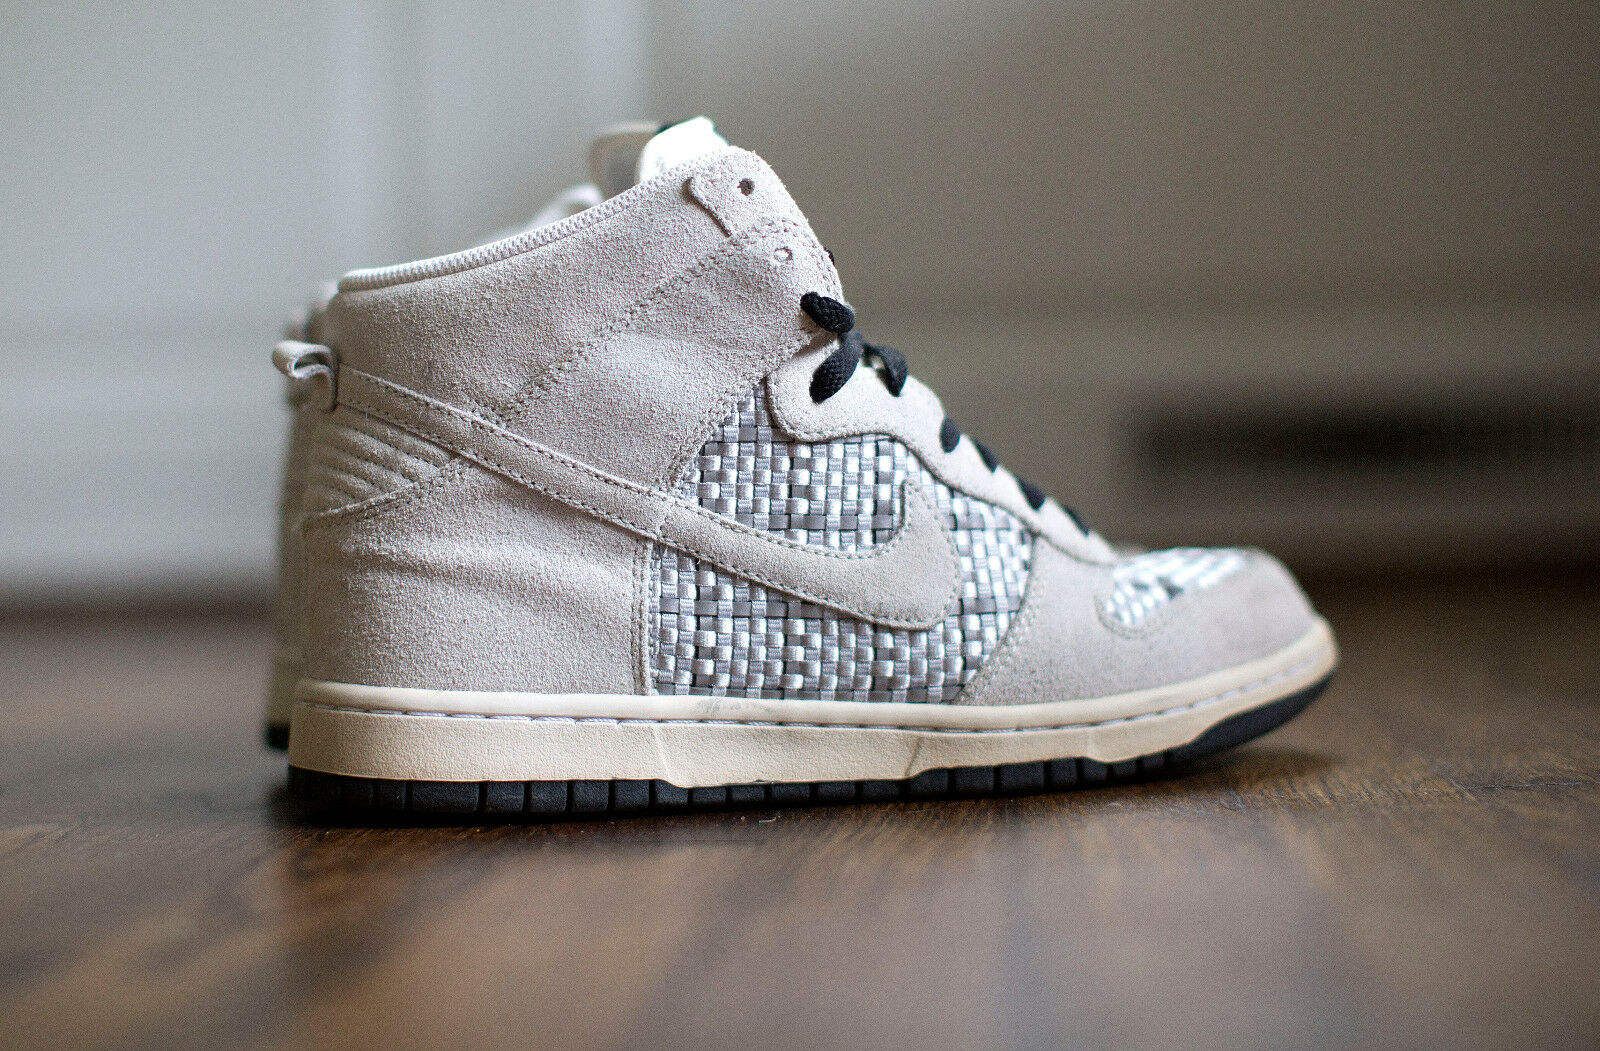 Nike Dunk High 3m Woven  Cheap and fashionable